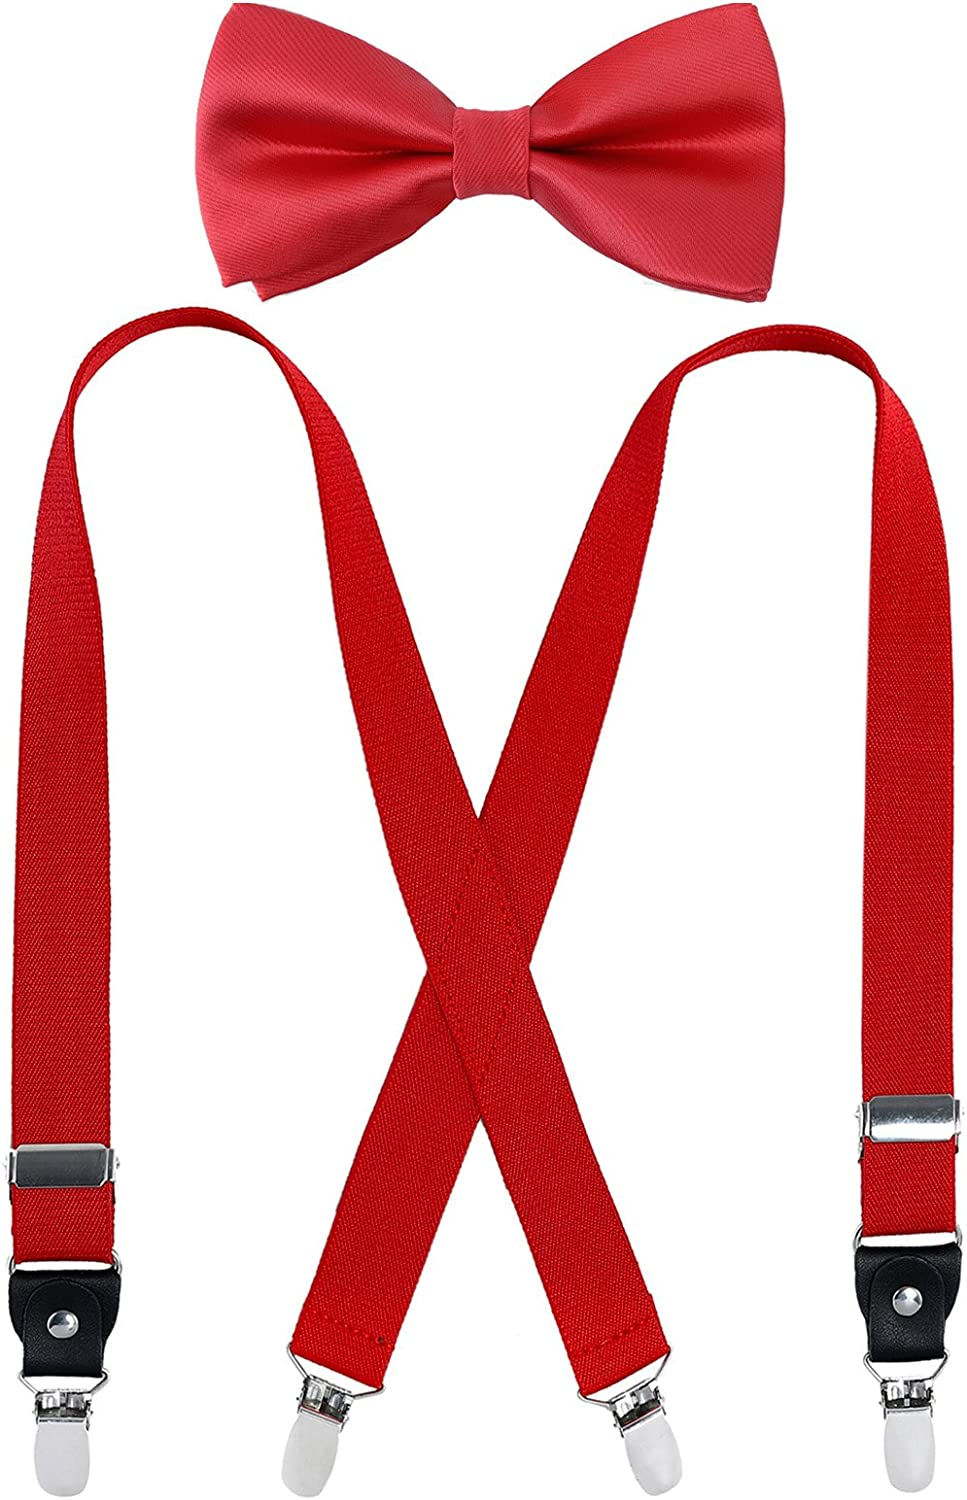 31Inches , Royal blue Kids Boy Suspenders Bowtie Set 9 Years to 5 Feet Tall Adjustable Suspender and Pre tied Bow Tie Set for Men